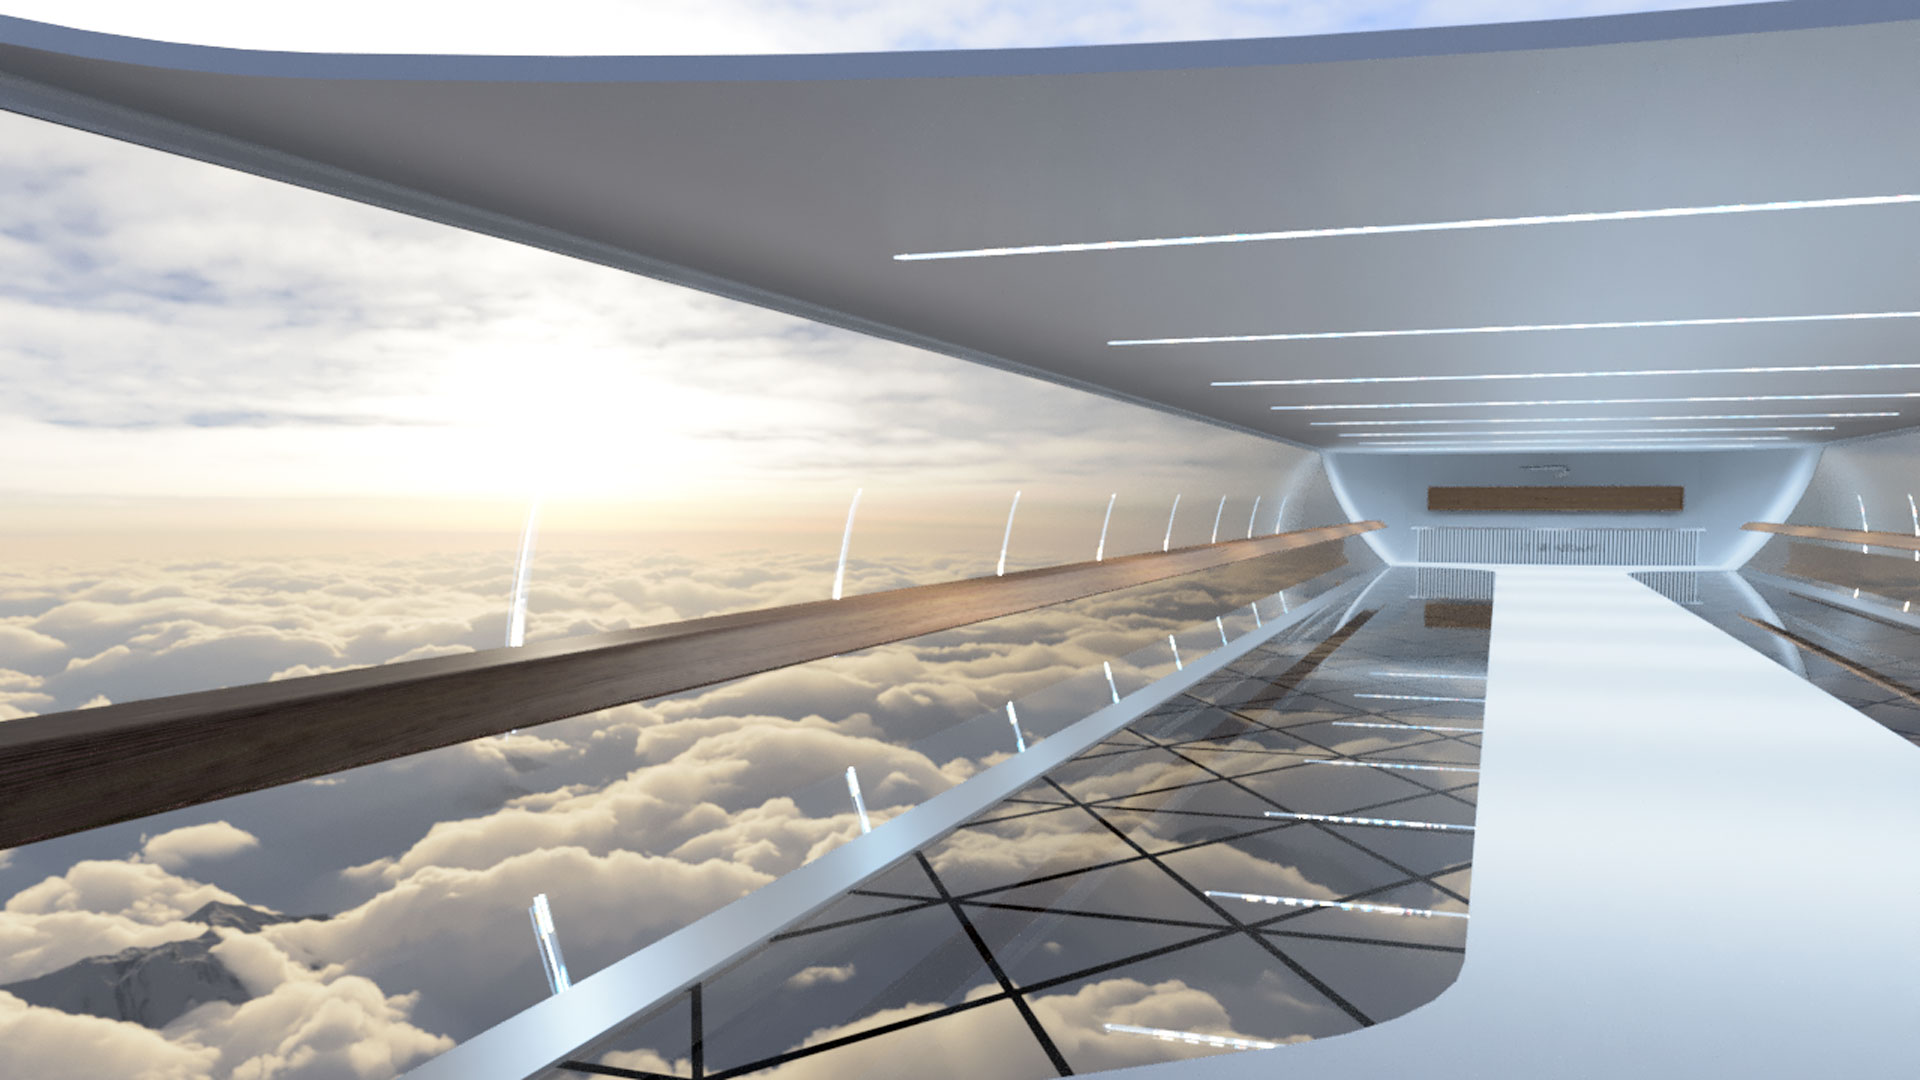 Envisioning the next 100 years of flight and aviation